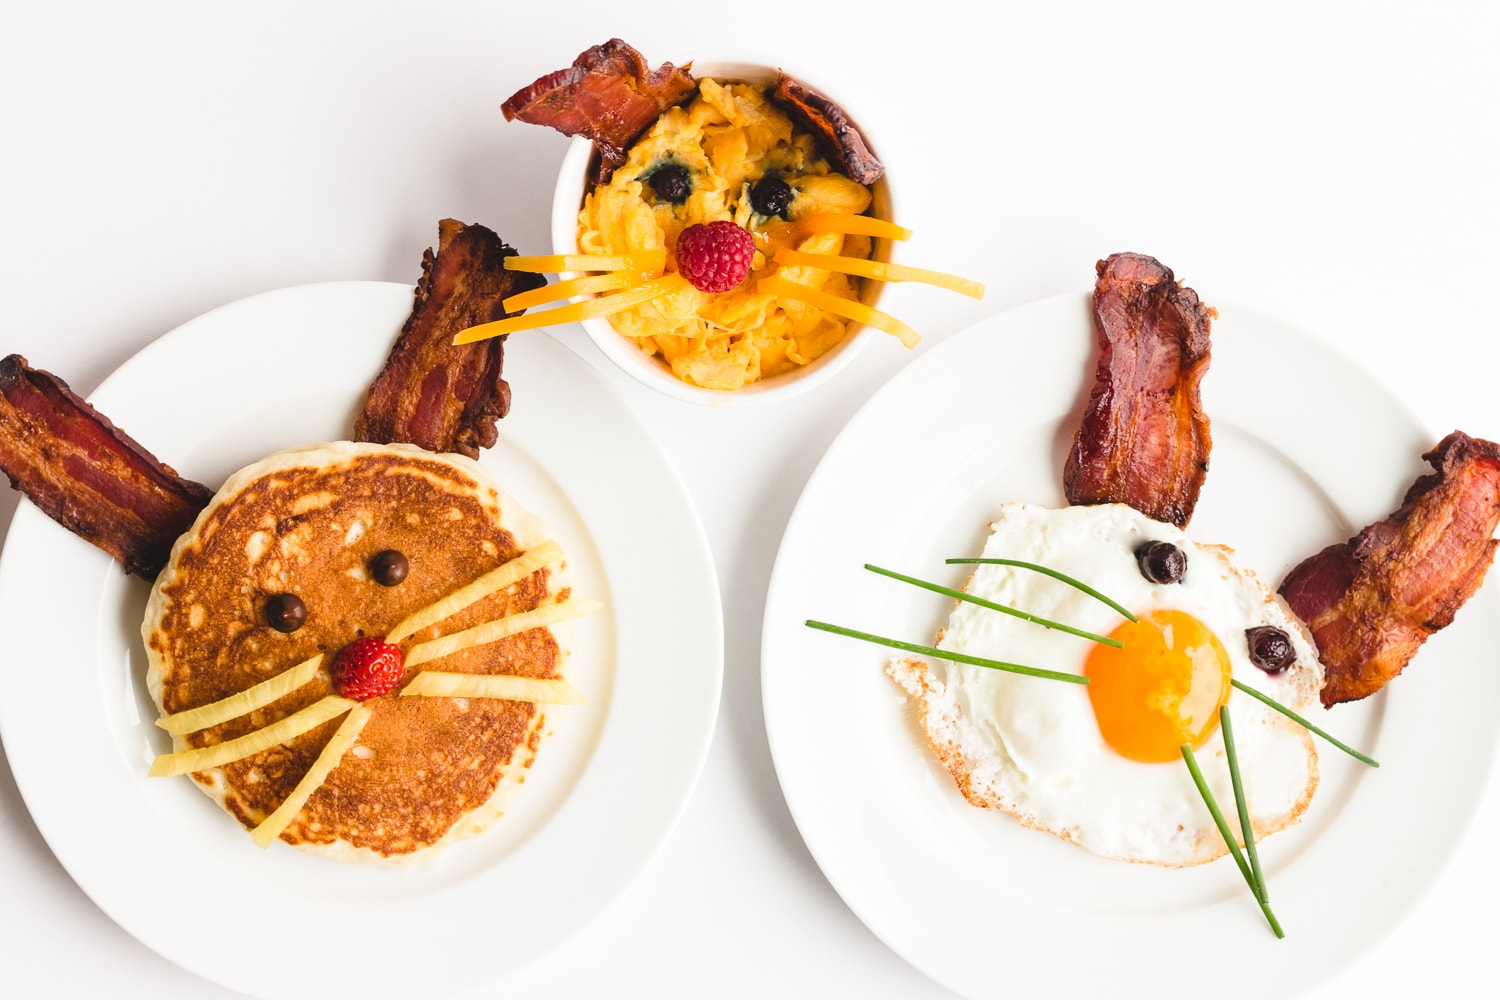 3 plates containing bacon and eggs or pancake breakfast that looks like an Easter Bunny. There is a pancake bunny, scrambled eggs bunny and fried egg bunny.